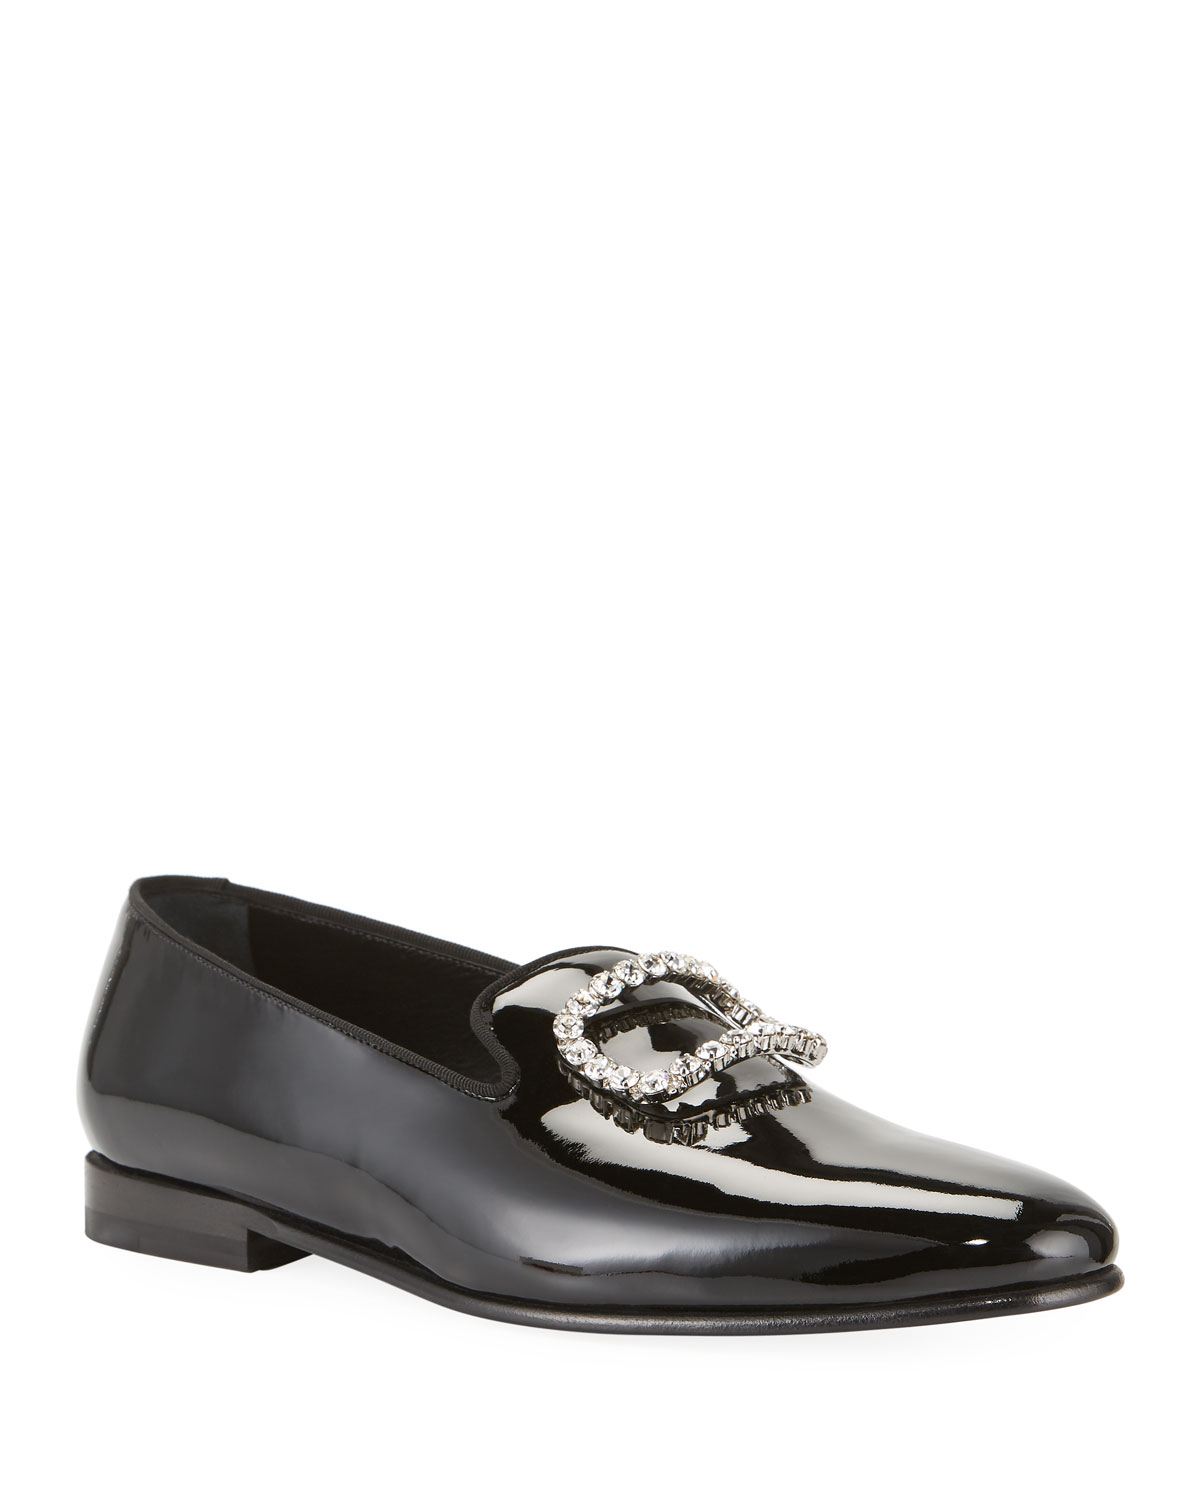 Manolo Blahnik Loafers MEN'S PATENT LEATHER JEWELED-BUCKLE LOAFERS